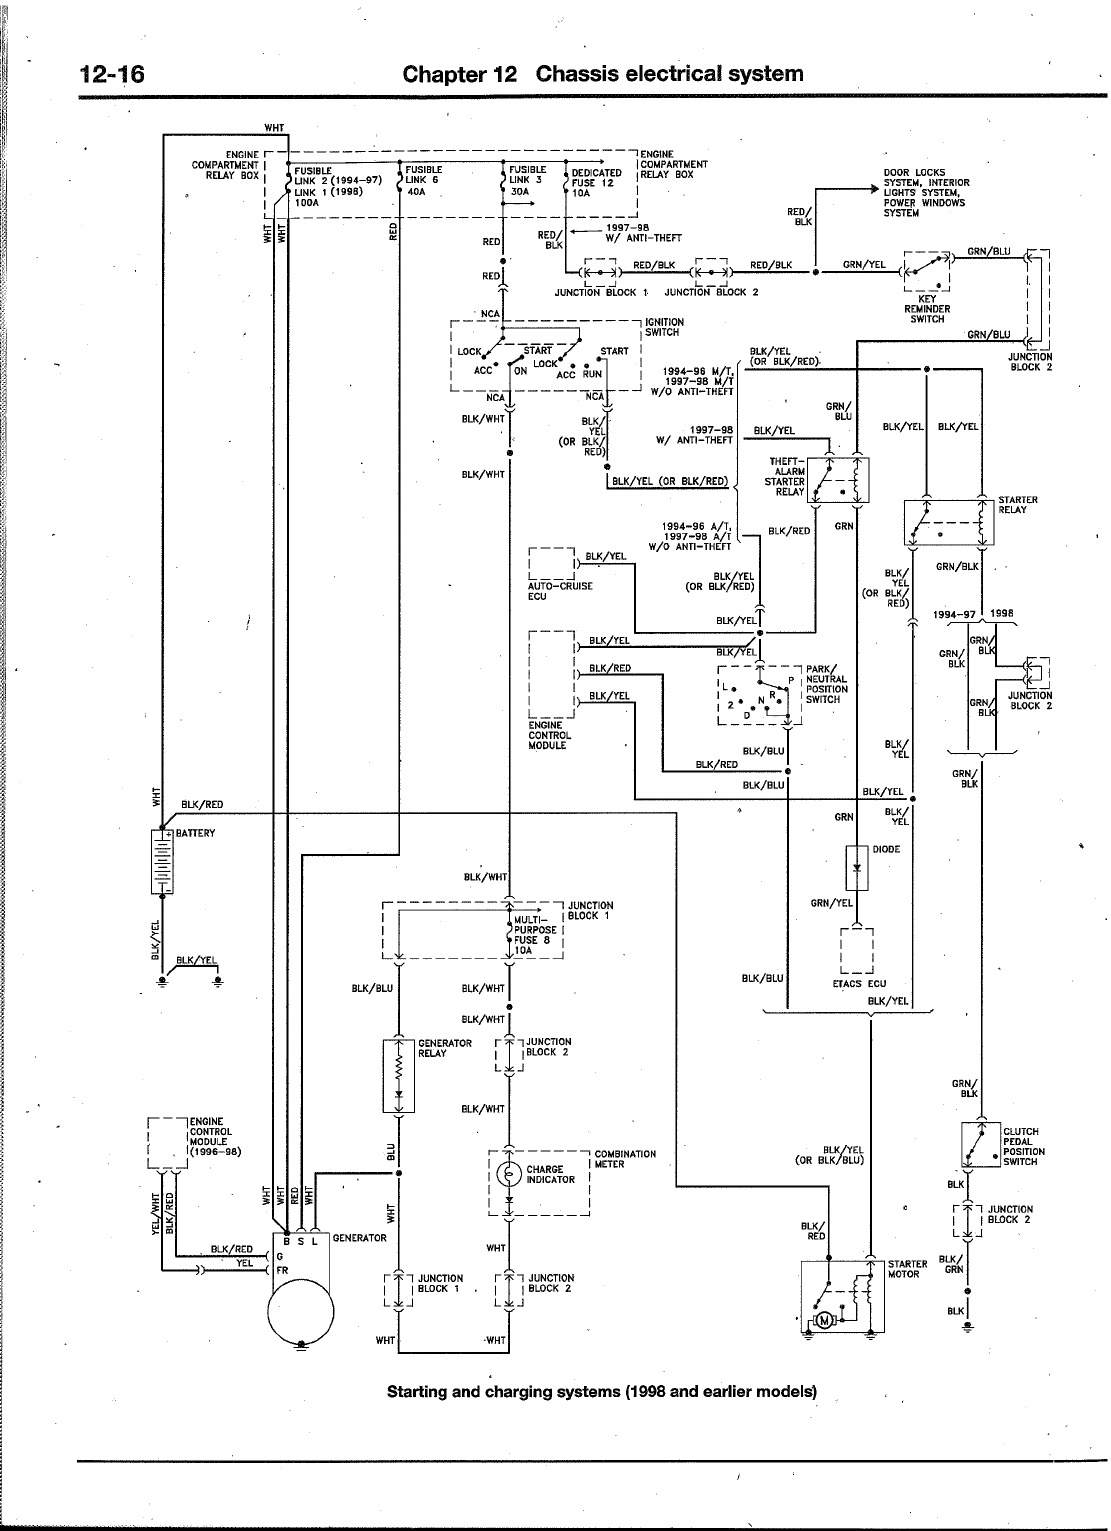 hight resolution of 01 mitsubishi galant wiring diagram wiring diagram blog 1993 mitsubishi galant ecu wiring diagram